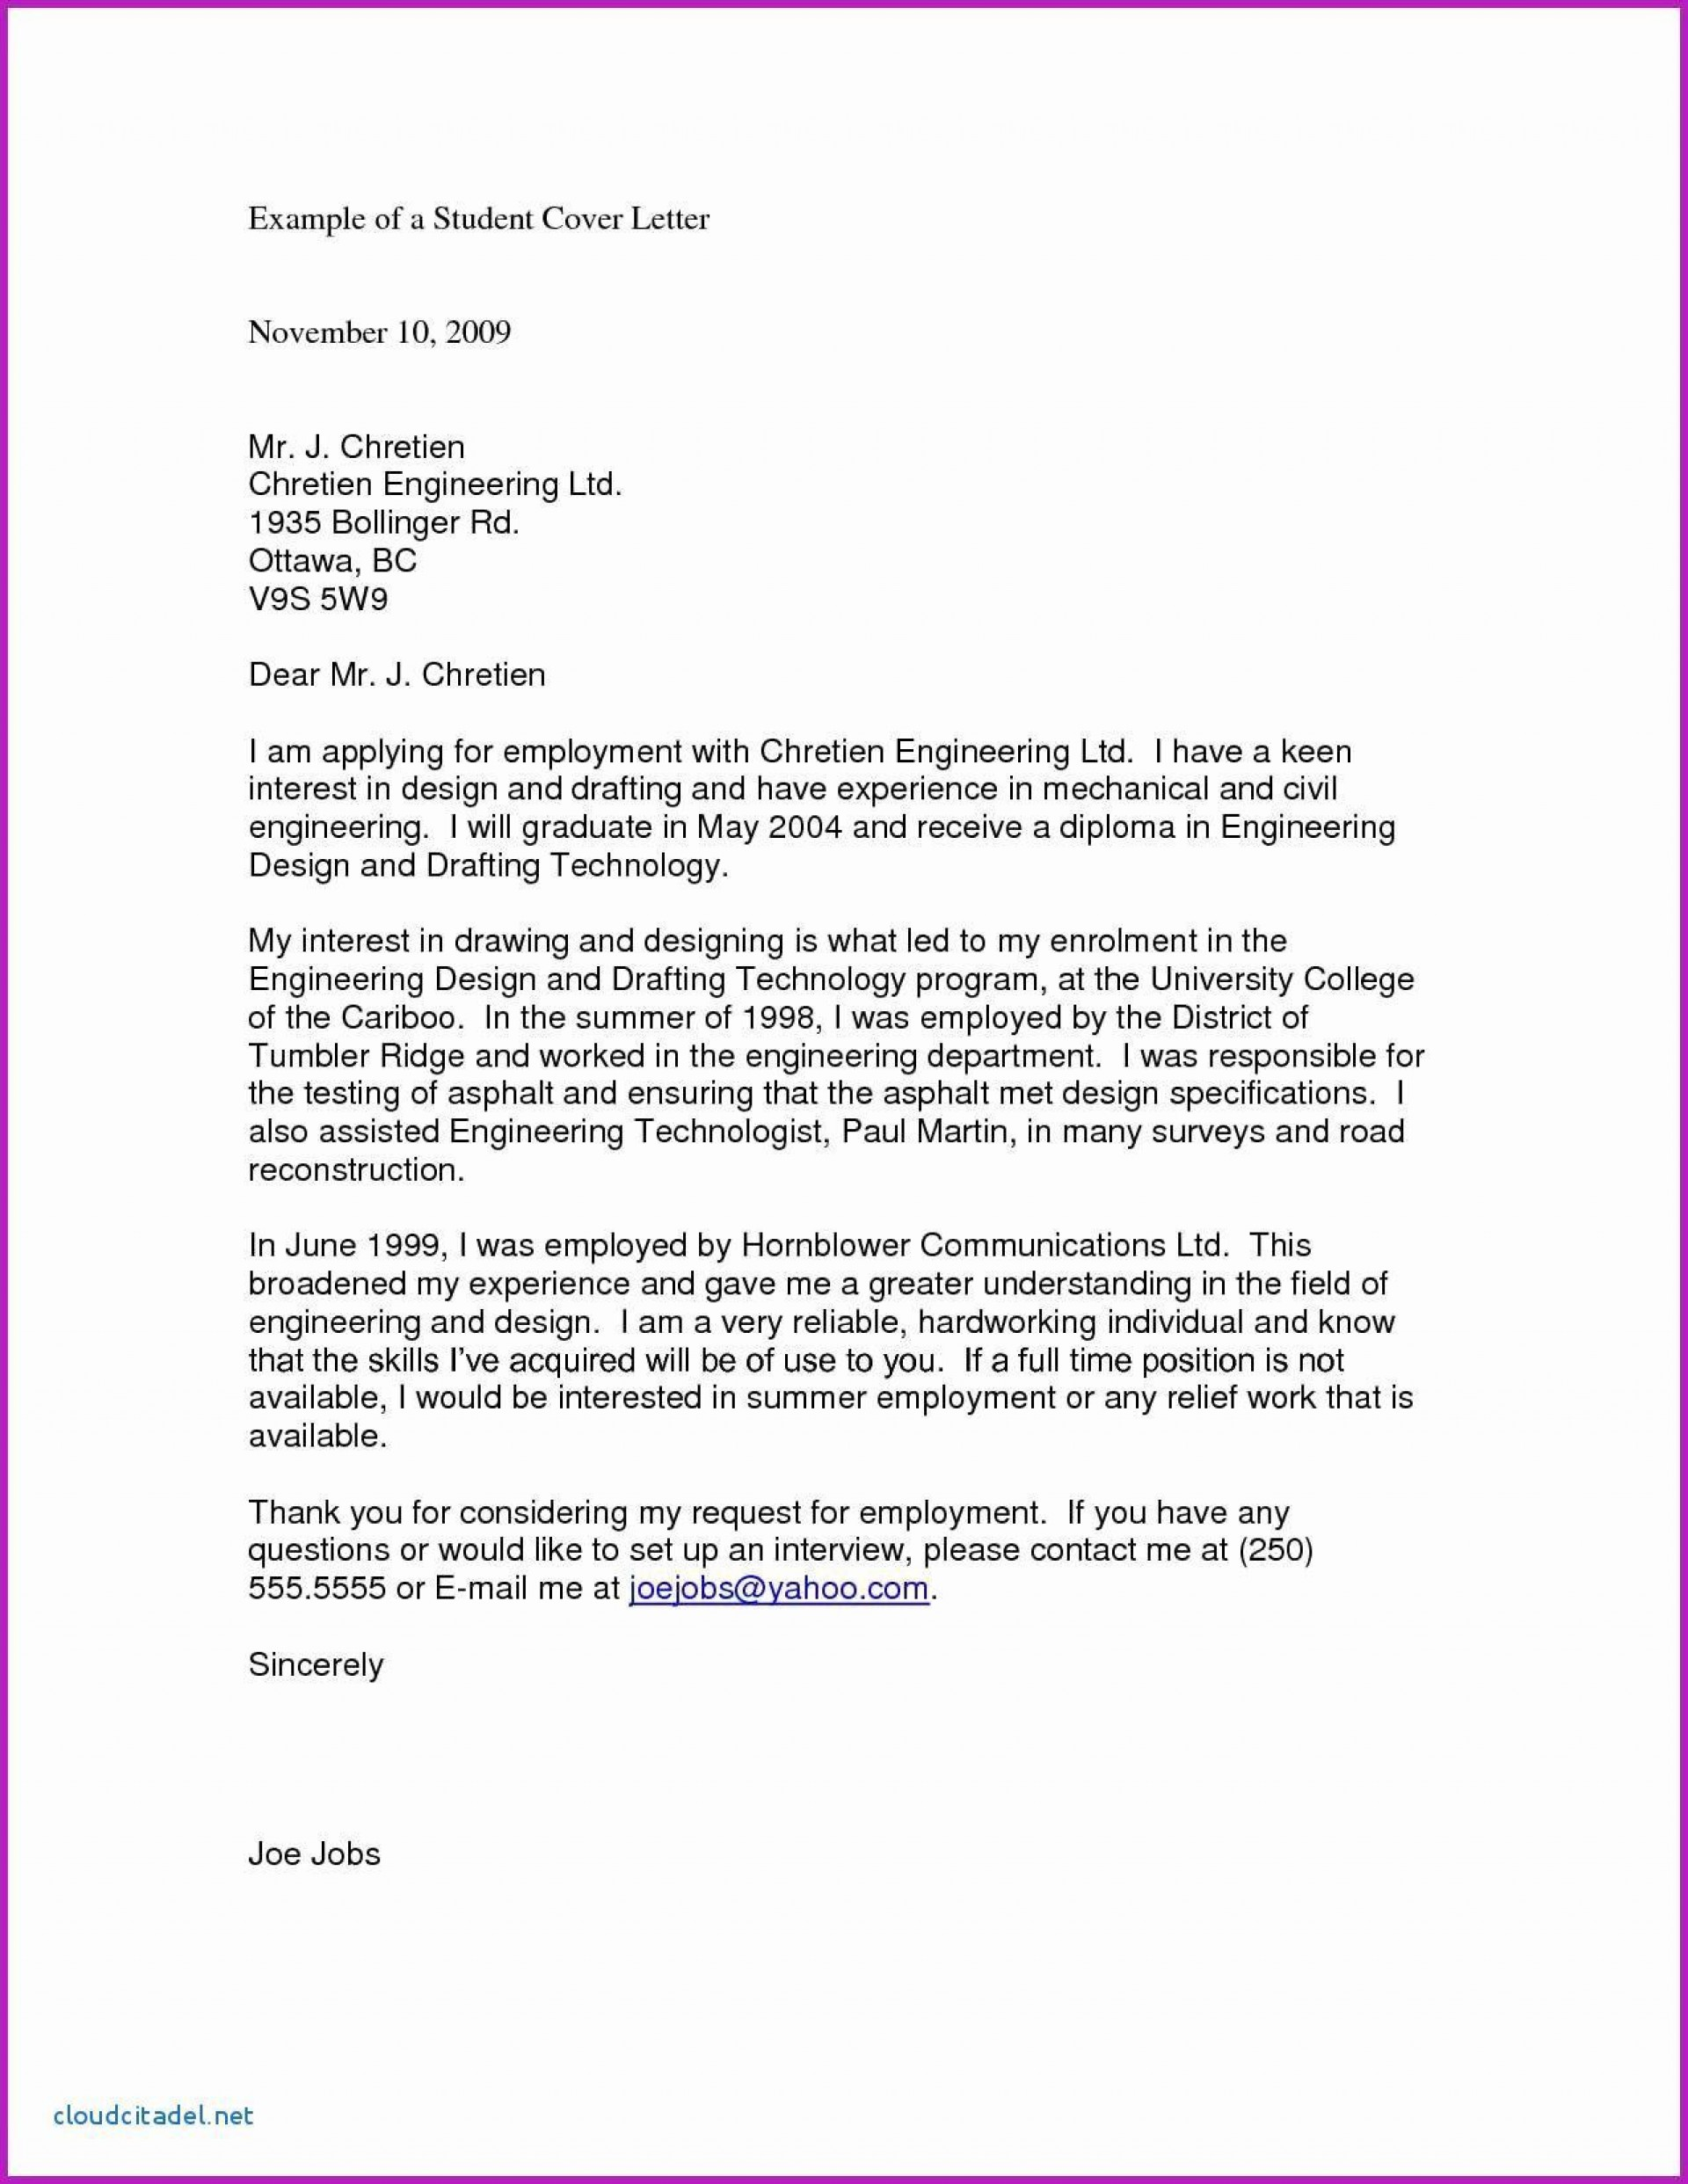 003 Excellent Cover Letter Sample Template For Fresh Graduate In Marketing Inspiration 1920